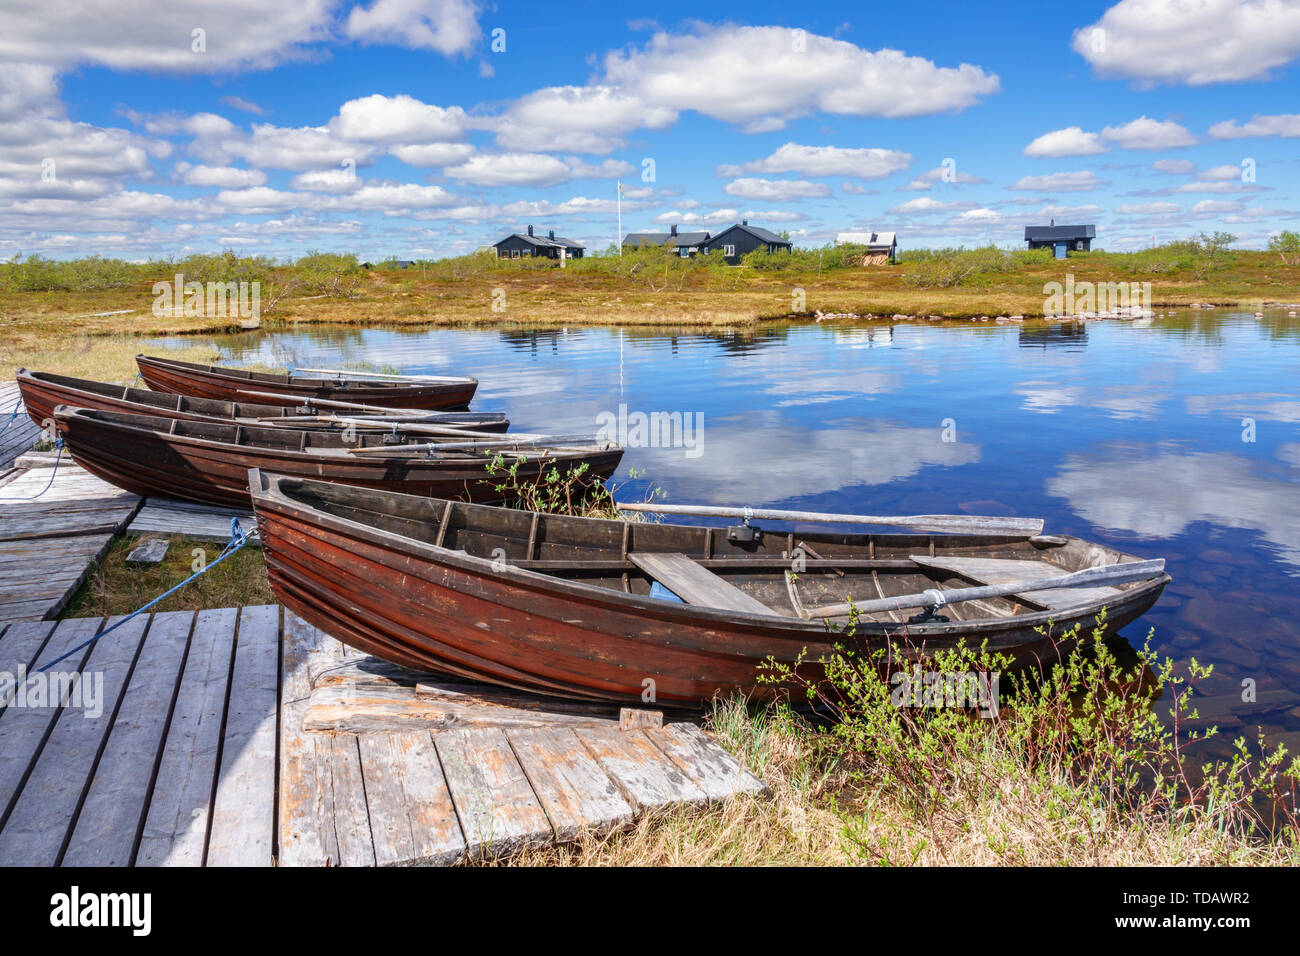 Rowing boats on a jetty by a lake - Stock Image